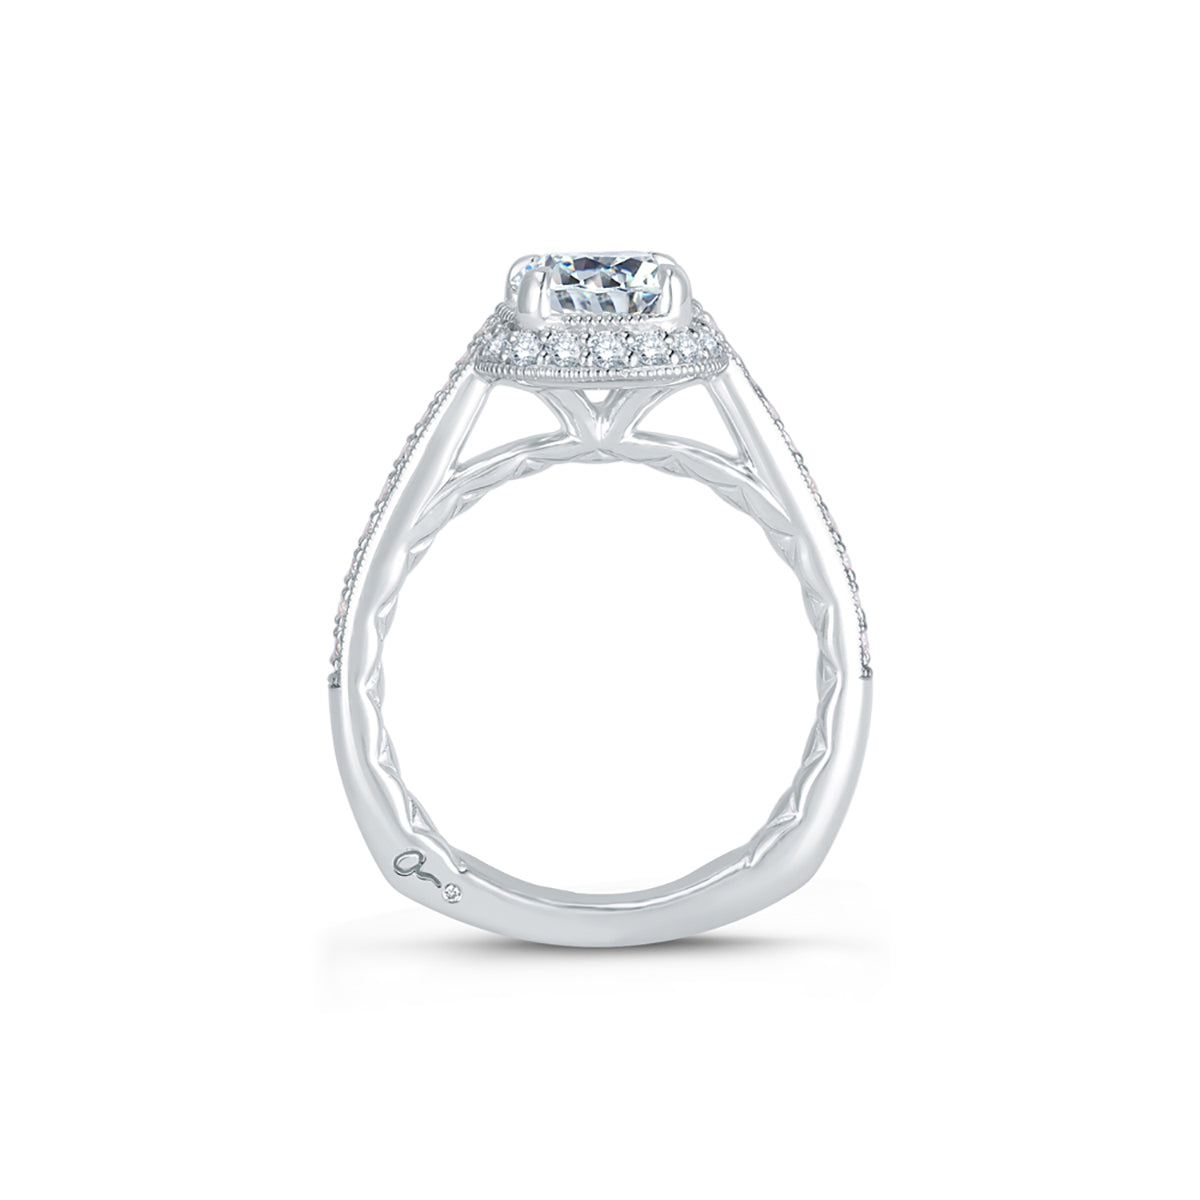 A.Jaffe Stunning Four Prong Halo Cushion Cut Diamond Quilted Engagement Ring MES756Q/183